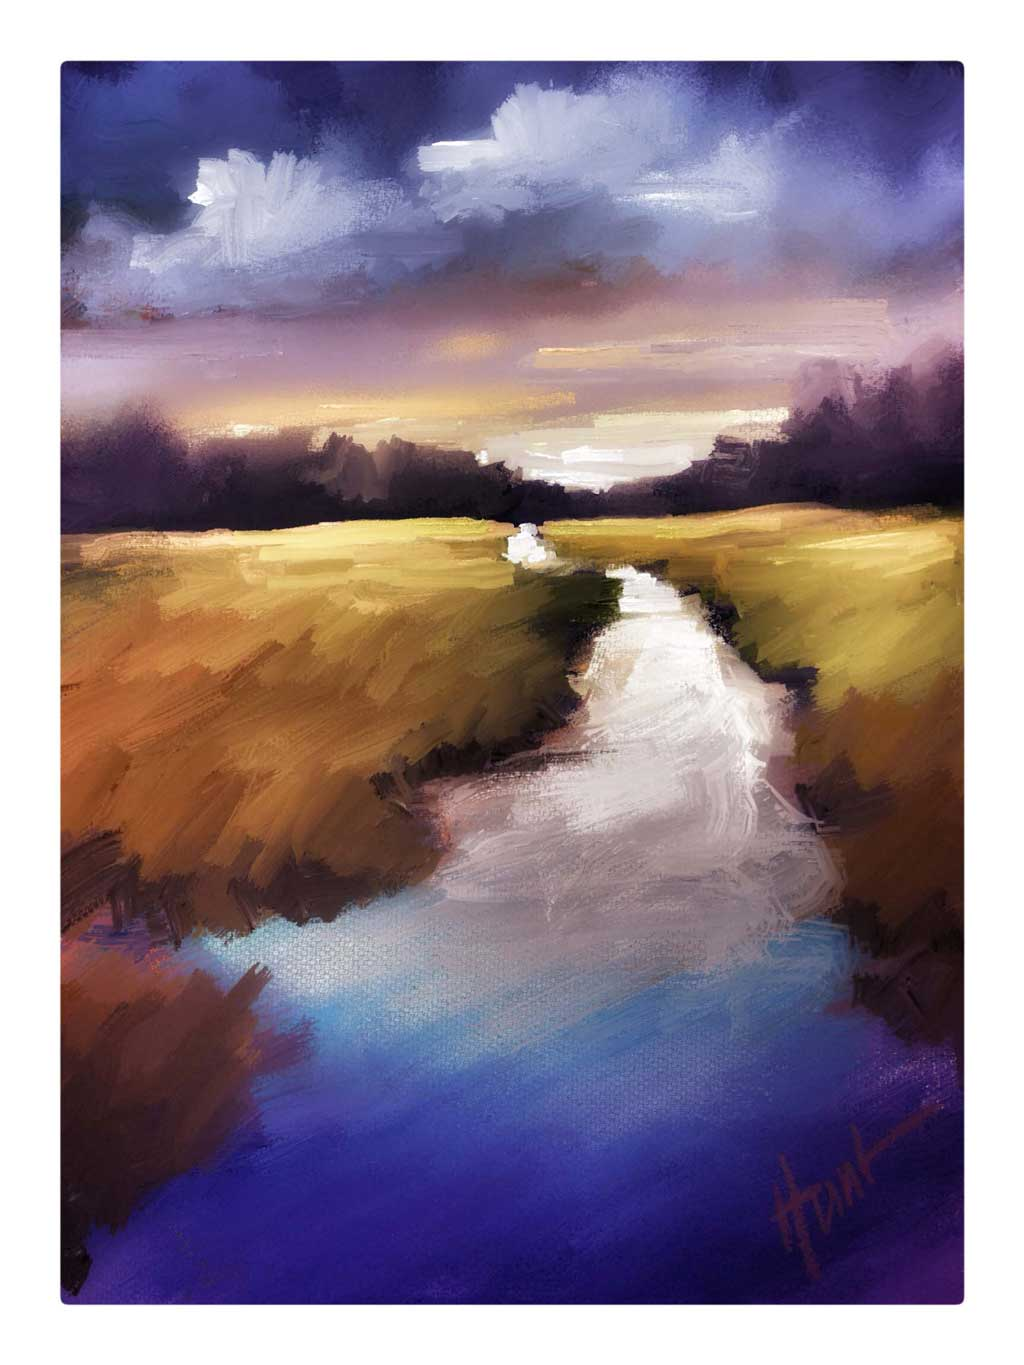 Digital painting of a river that looks white and icy then flows to deep blue at the bottom of the painting. The grass surrounding the river is browning, as if it is Autumn. In the distance is a dark line of trees and the sky above is deeply colored as if the sun will set soon.